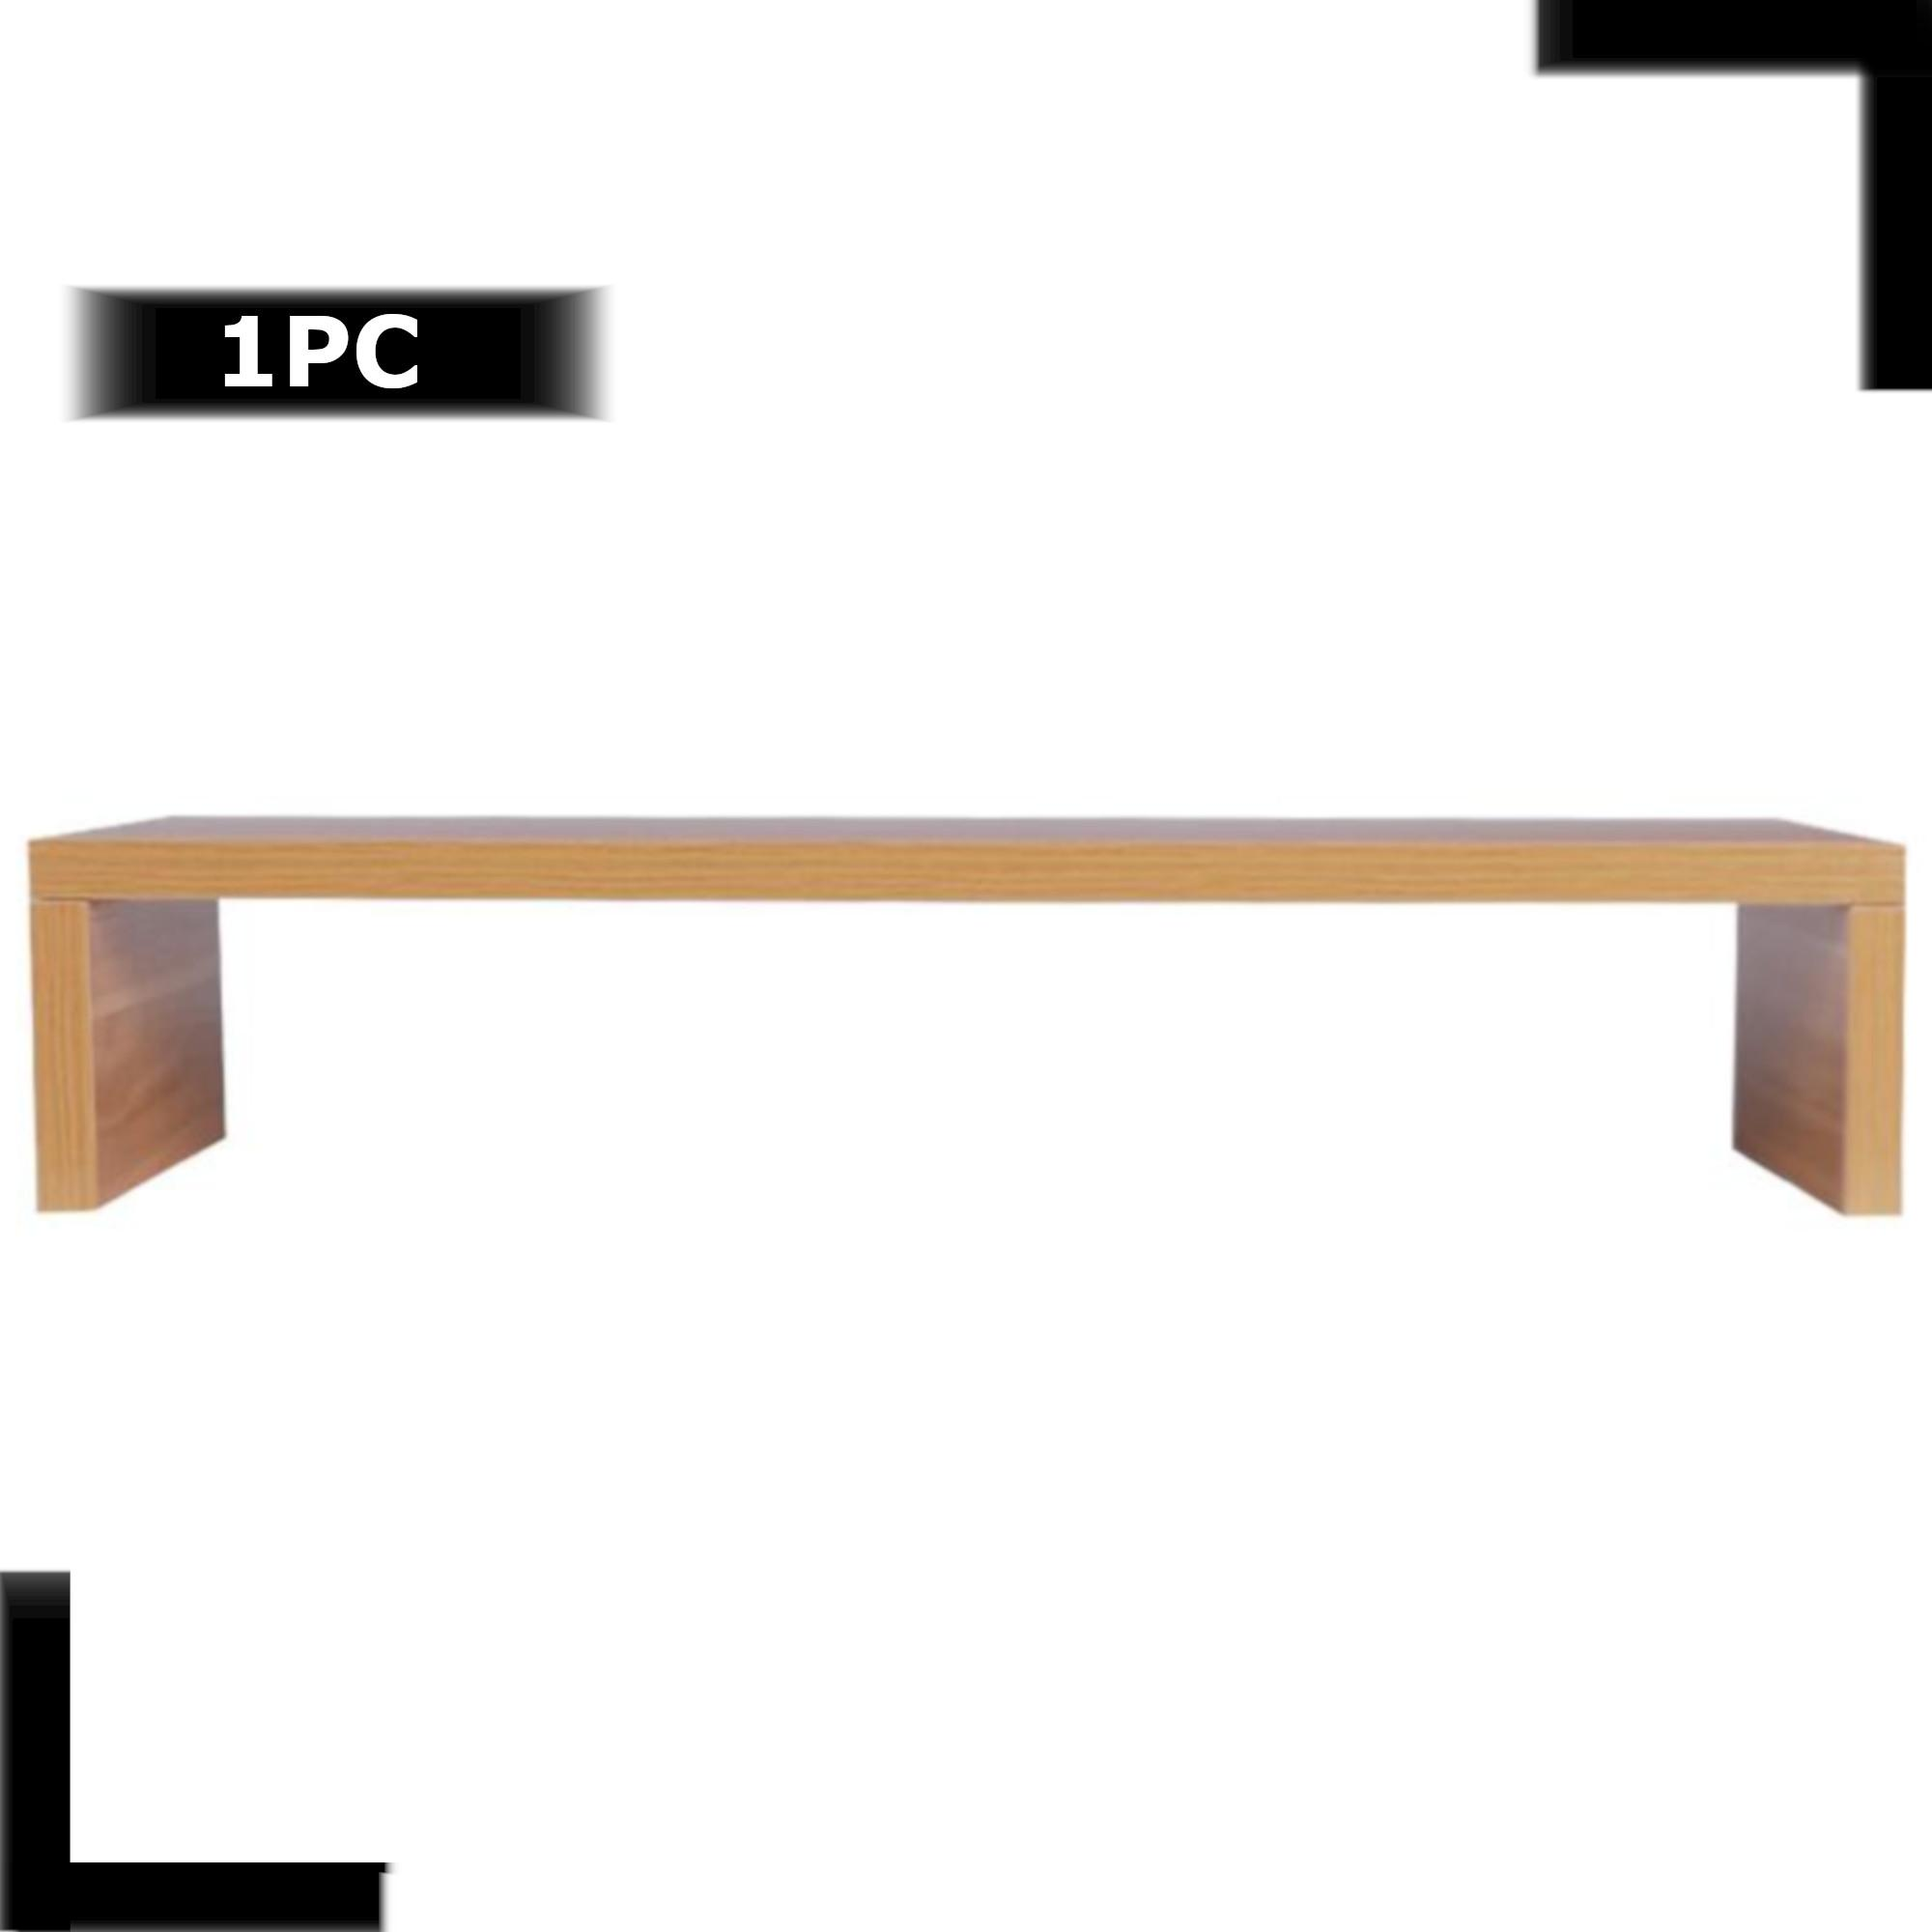 Basic Monitor Stand by EDLP